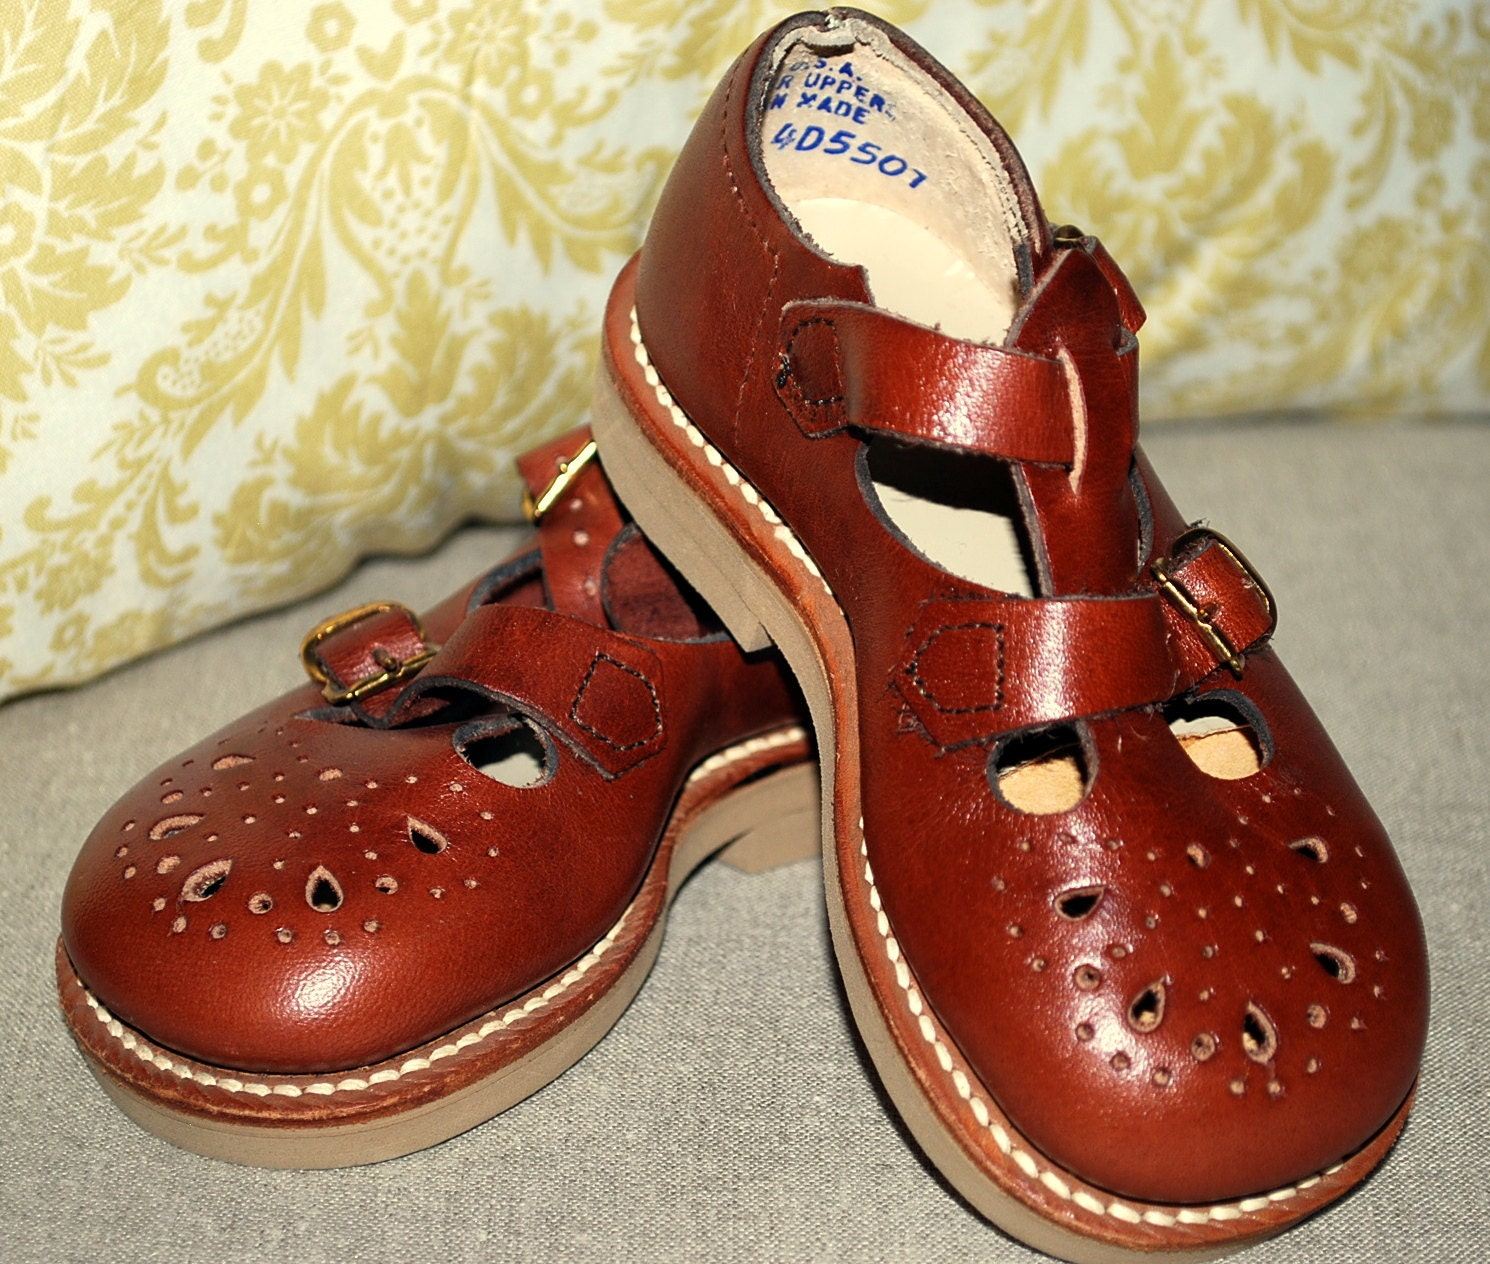 Dress Shoes With Red On Bottom